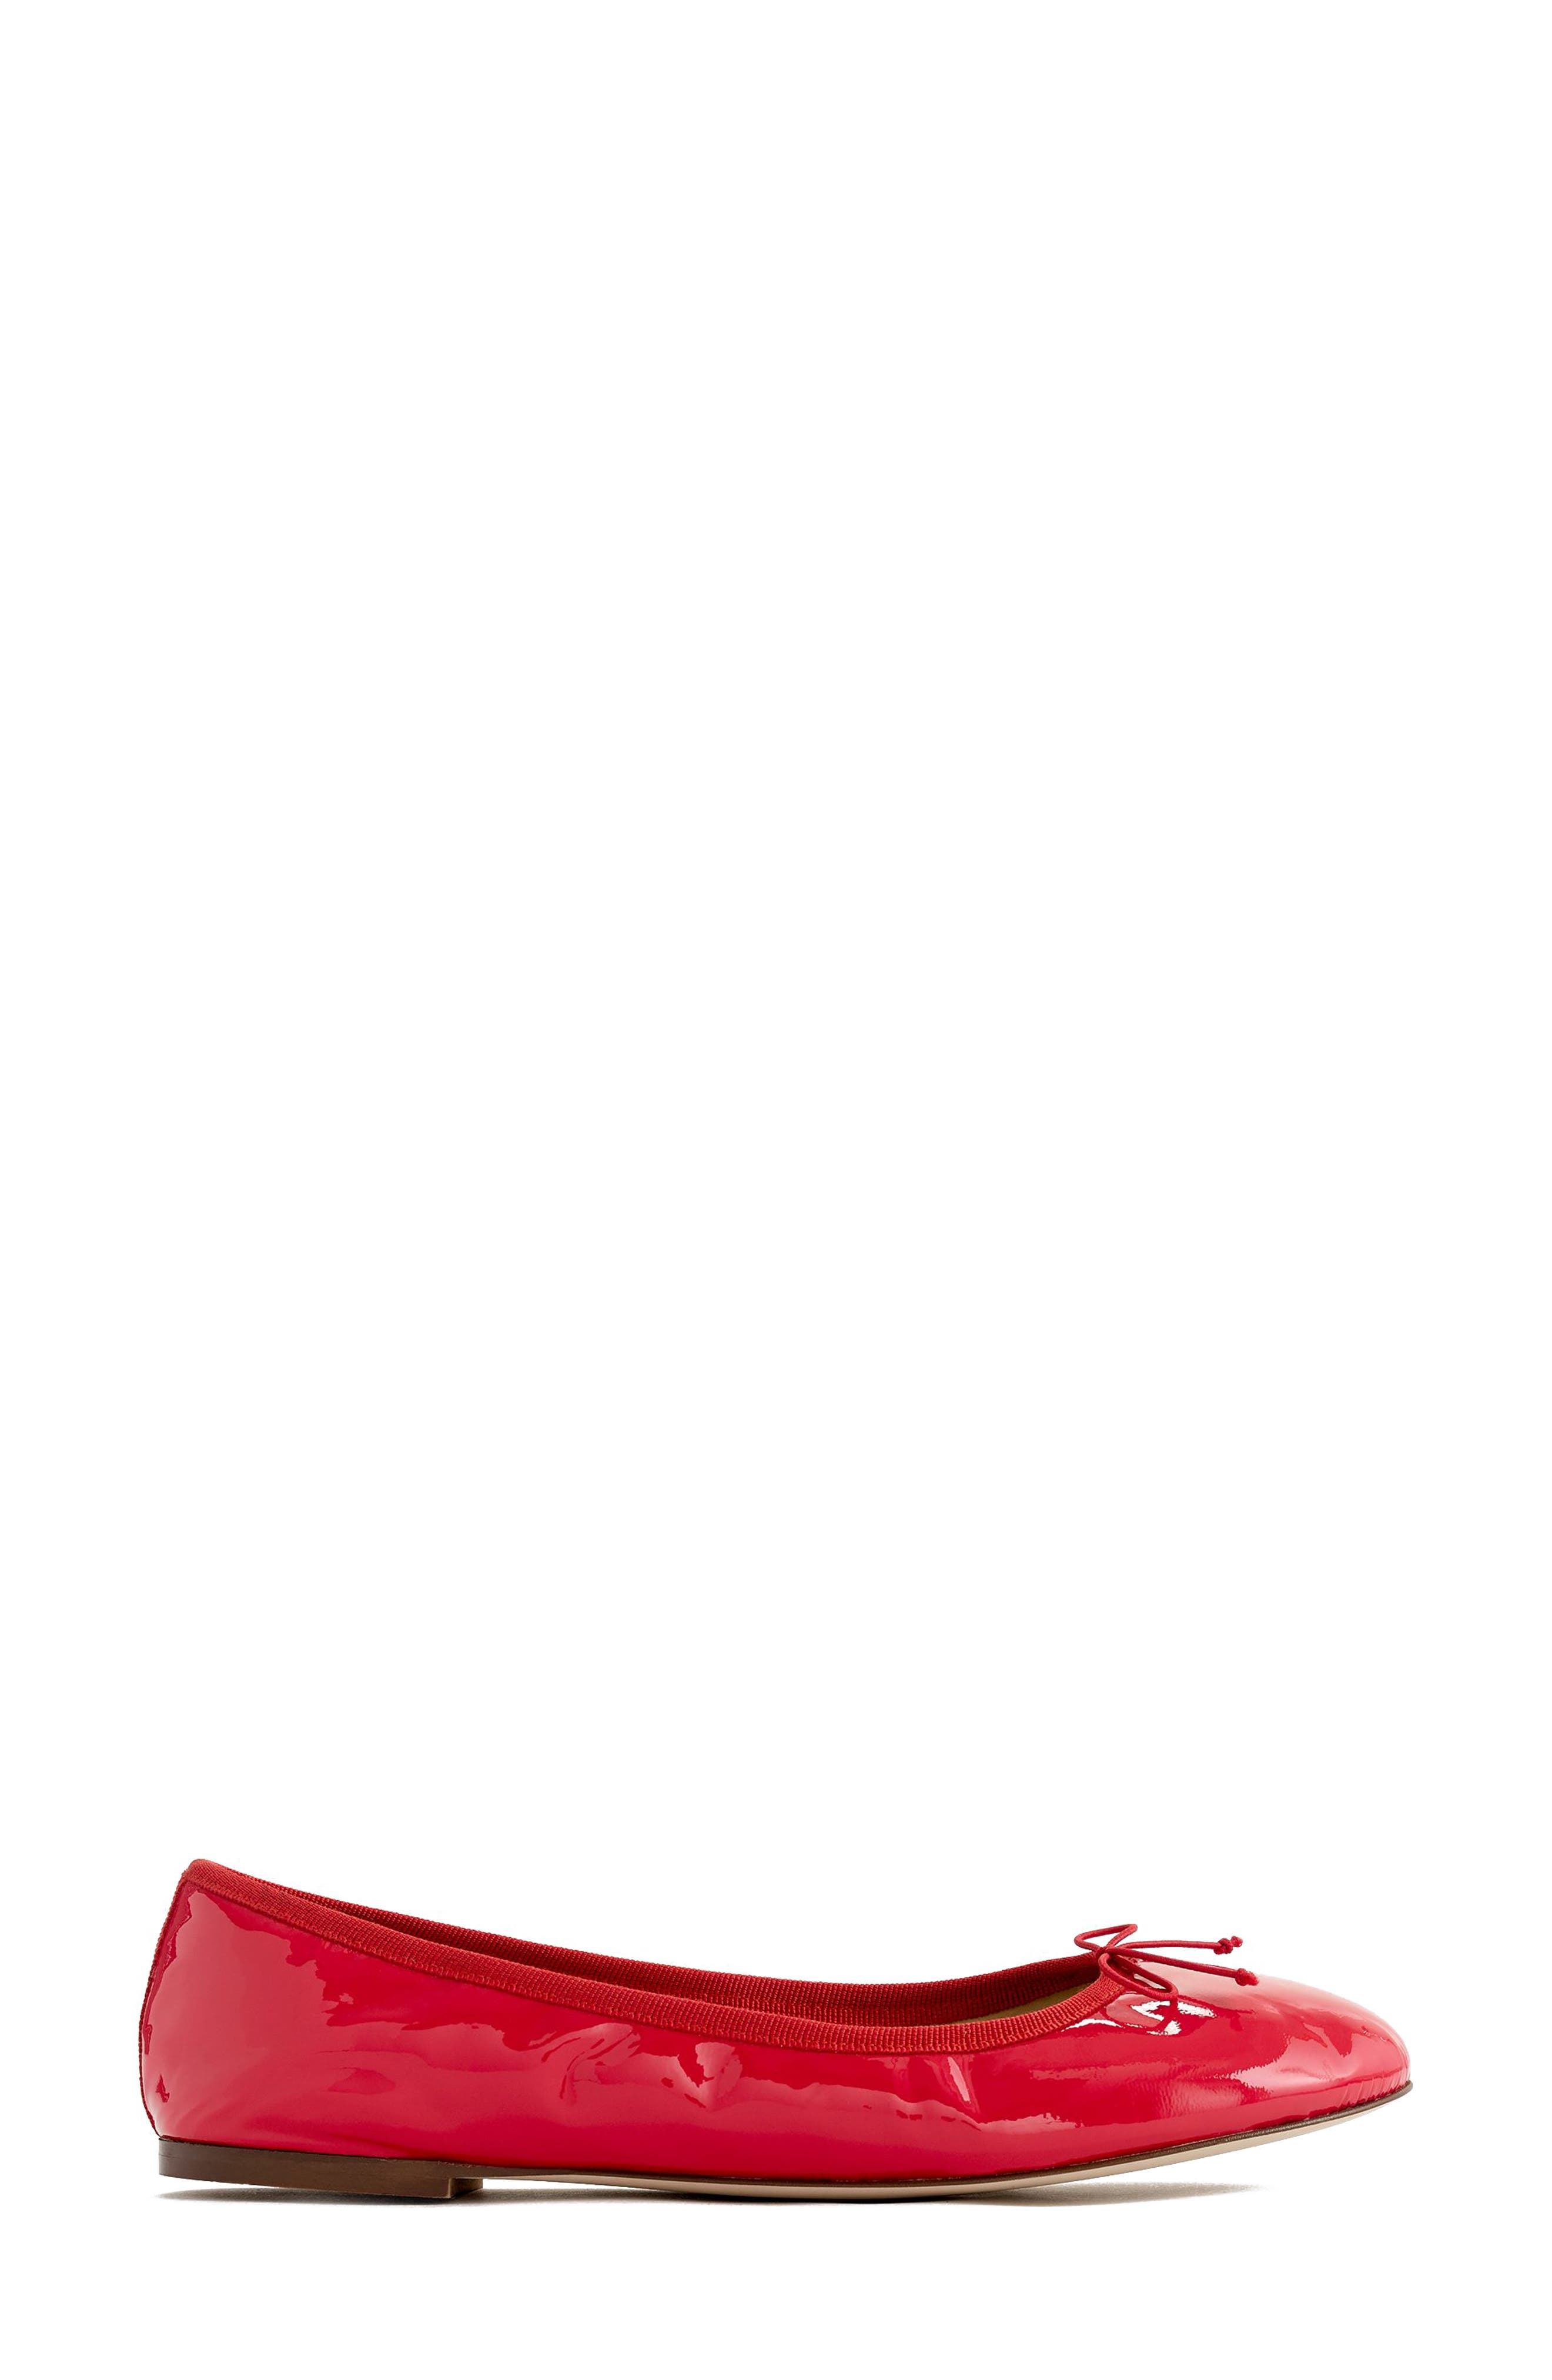 J.Crew Evie Ballet Flat,                             Alternate thumbnail 2, color,                             Providence Red Leather